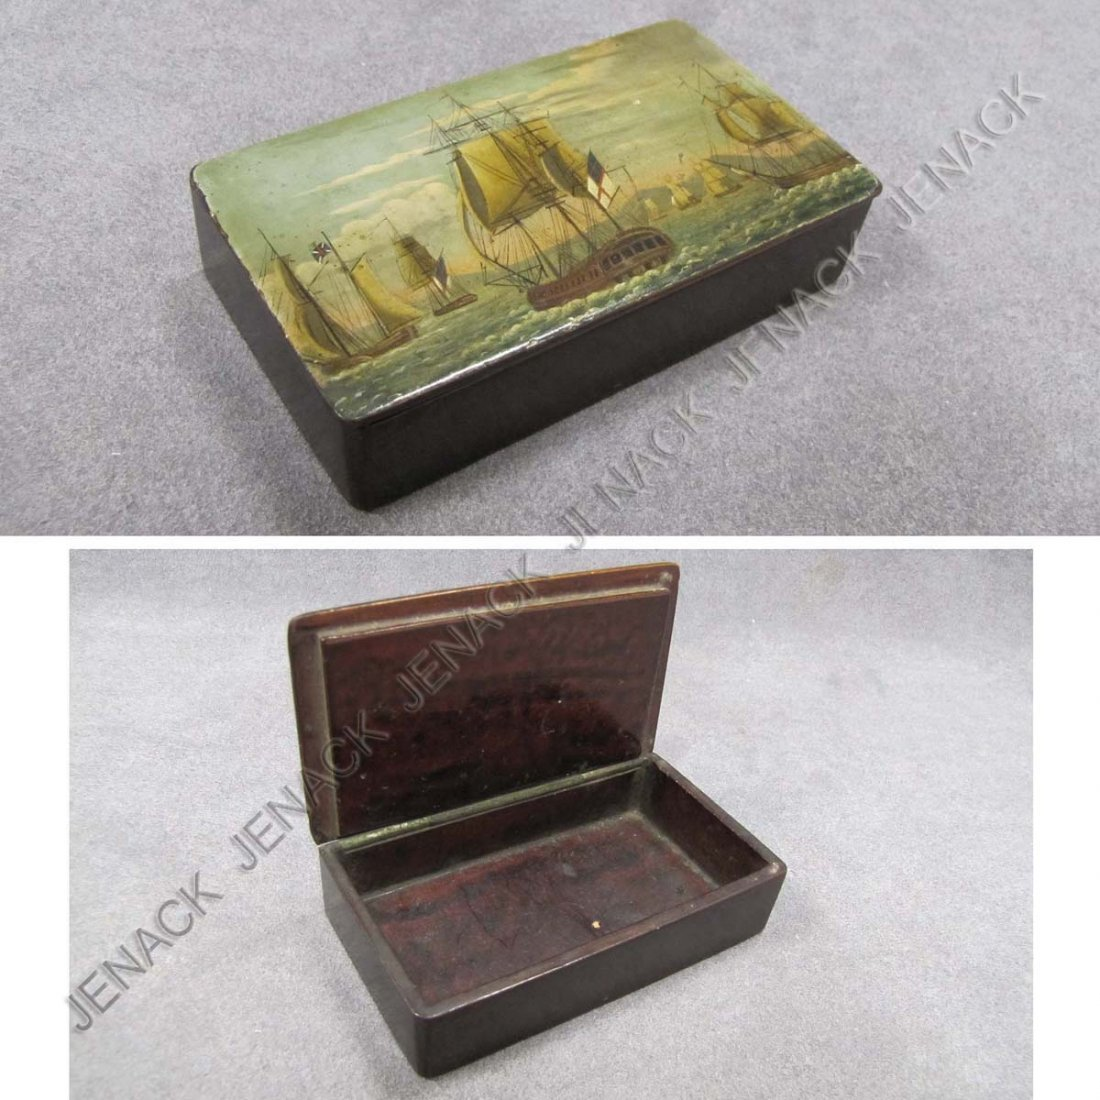 10: EARLY LACQUERED SNUFF BOX, SHIPS AT SEA, C.1840